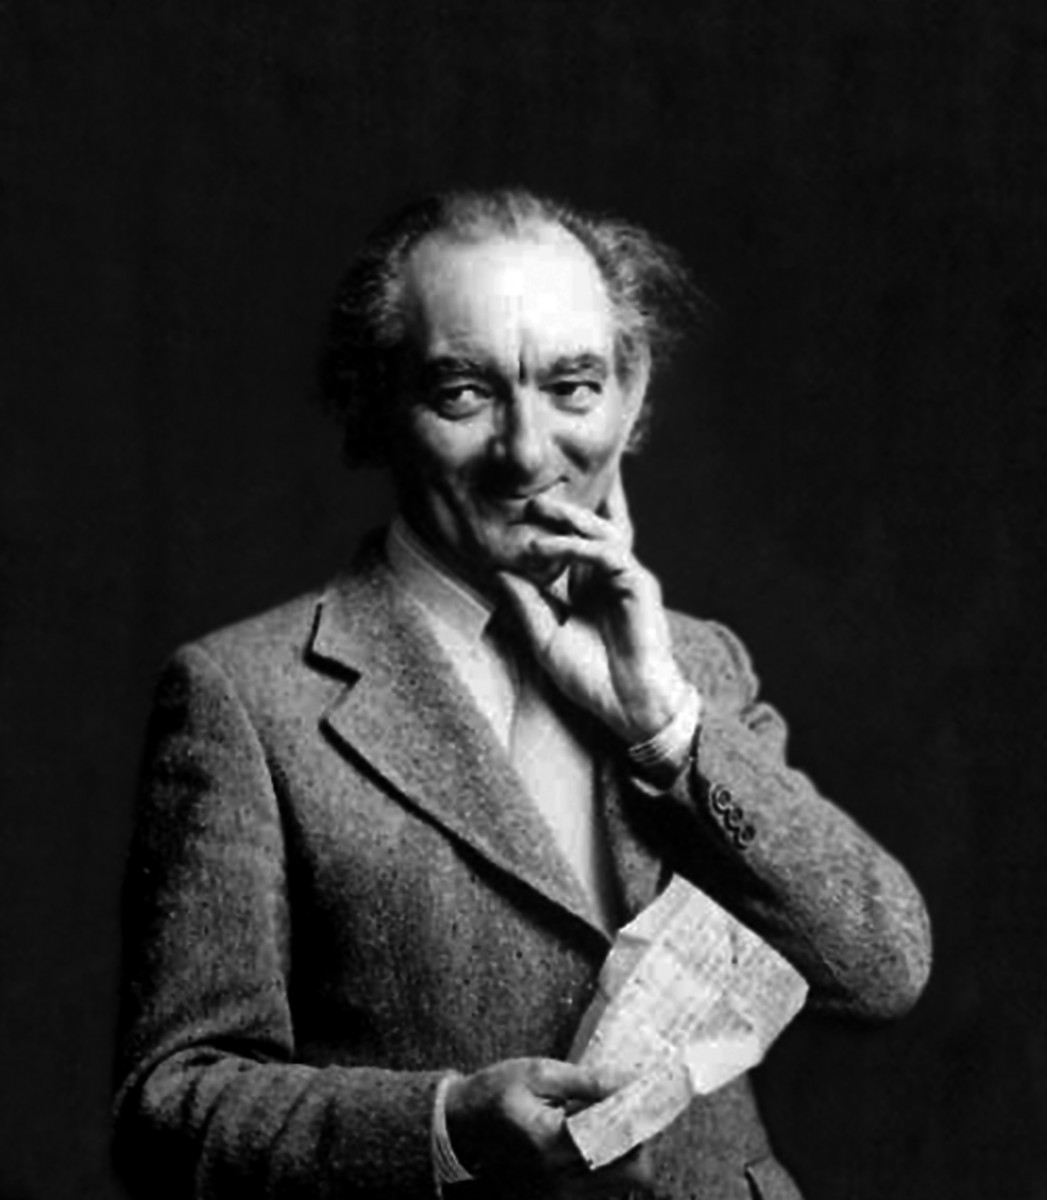 """an analysis of the character brian friel in freedom of the city 11 quotes from brian friel: this is your city this is your city"""" ― brian friel, the freedom of the city 0 likes like all quotes."""